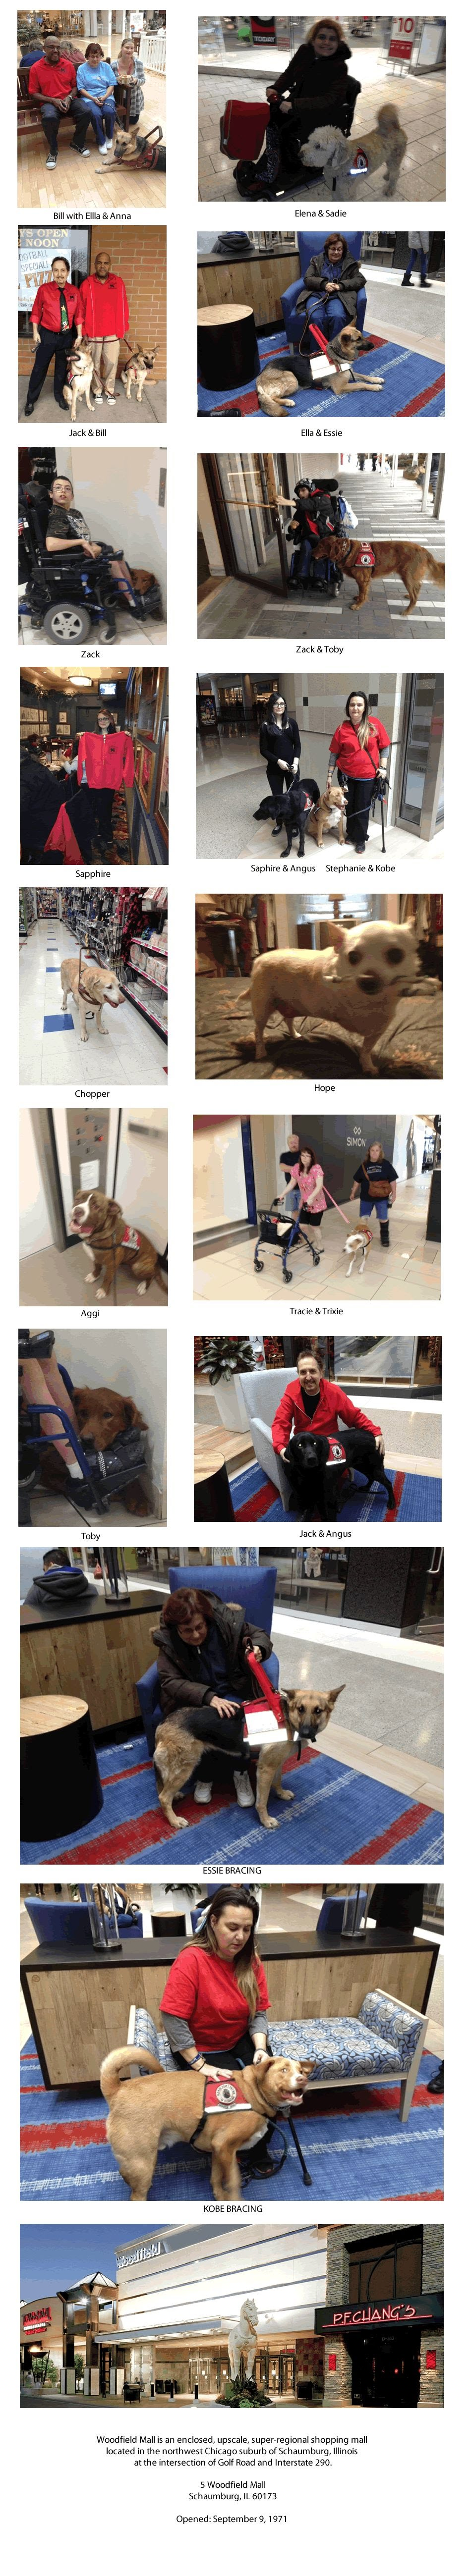 https://sites.google.com/site/barkingangelsservicedogs/home/shopping-at-woodffield-mall---03-01-2015